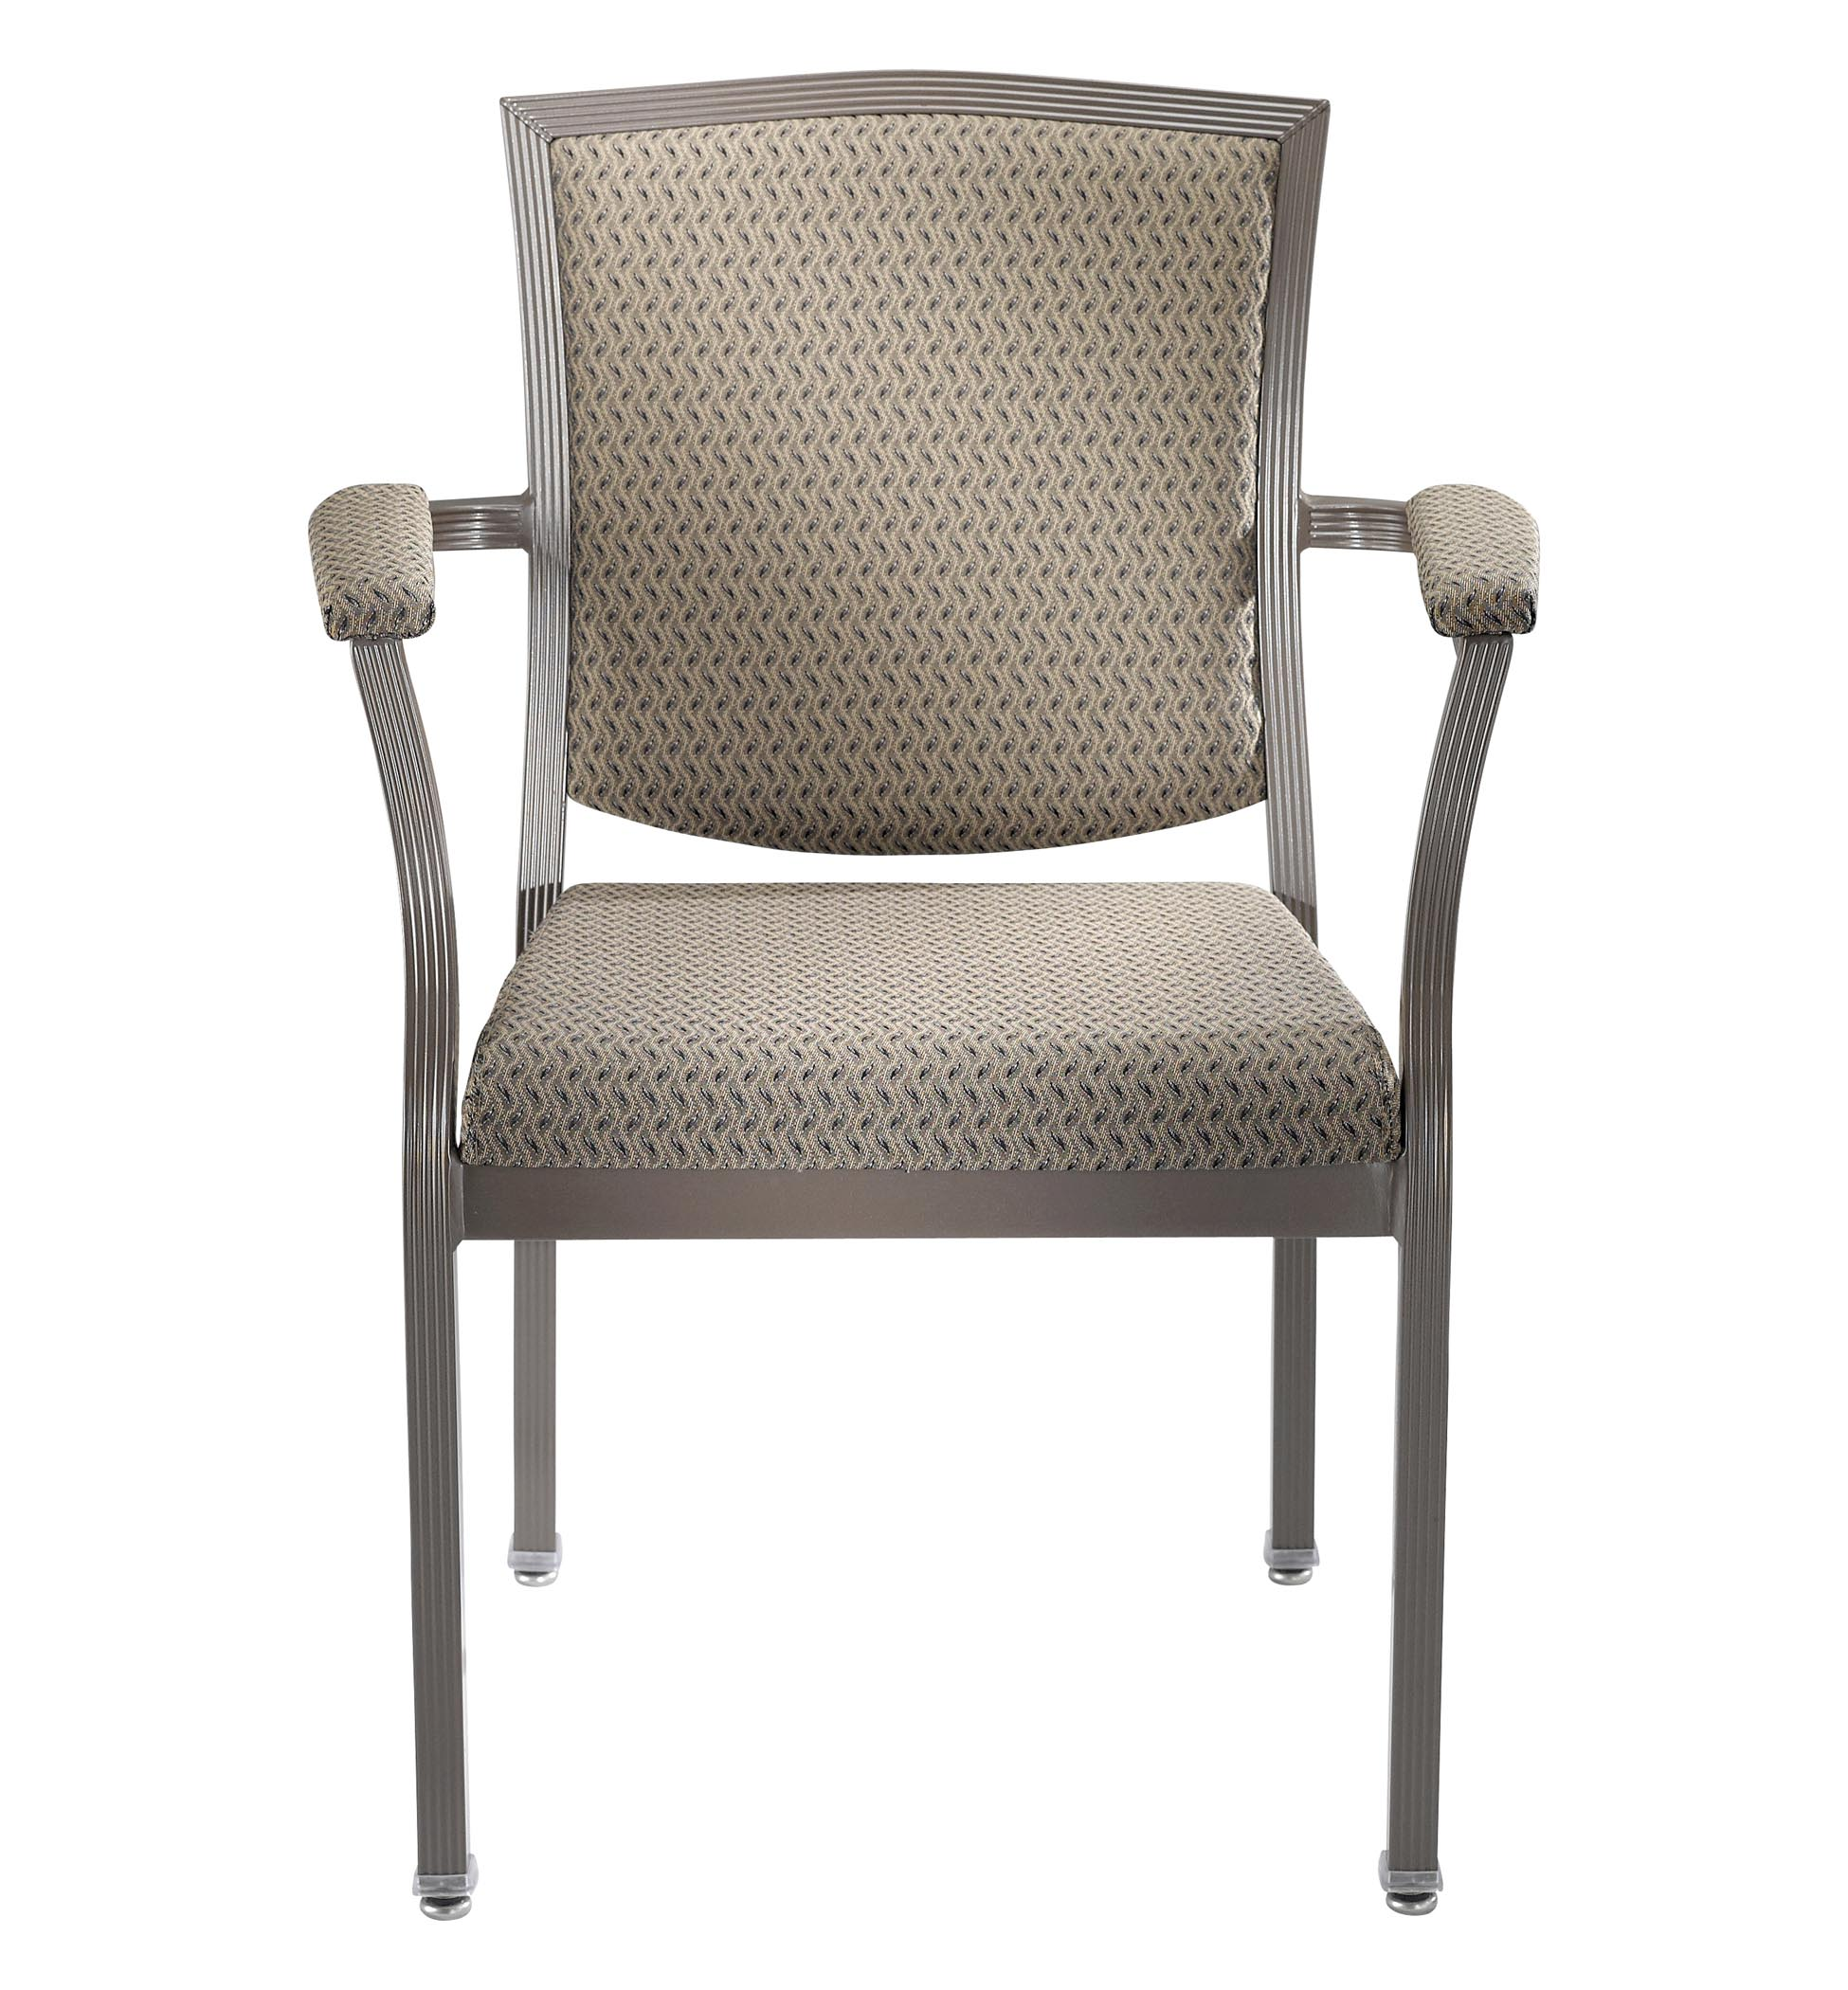 8671 1 Aluminum Banquet Chair